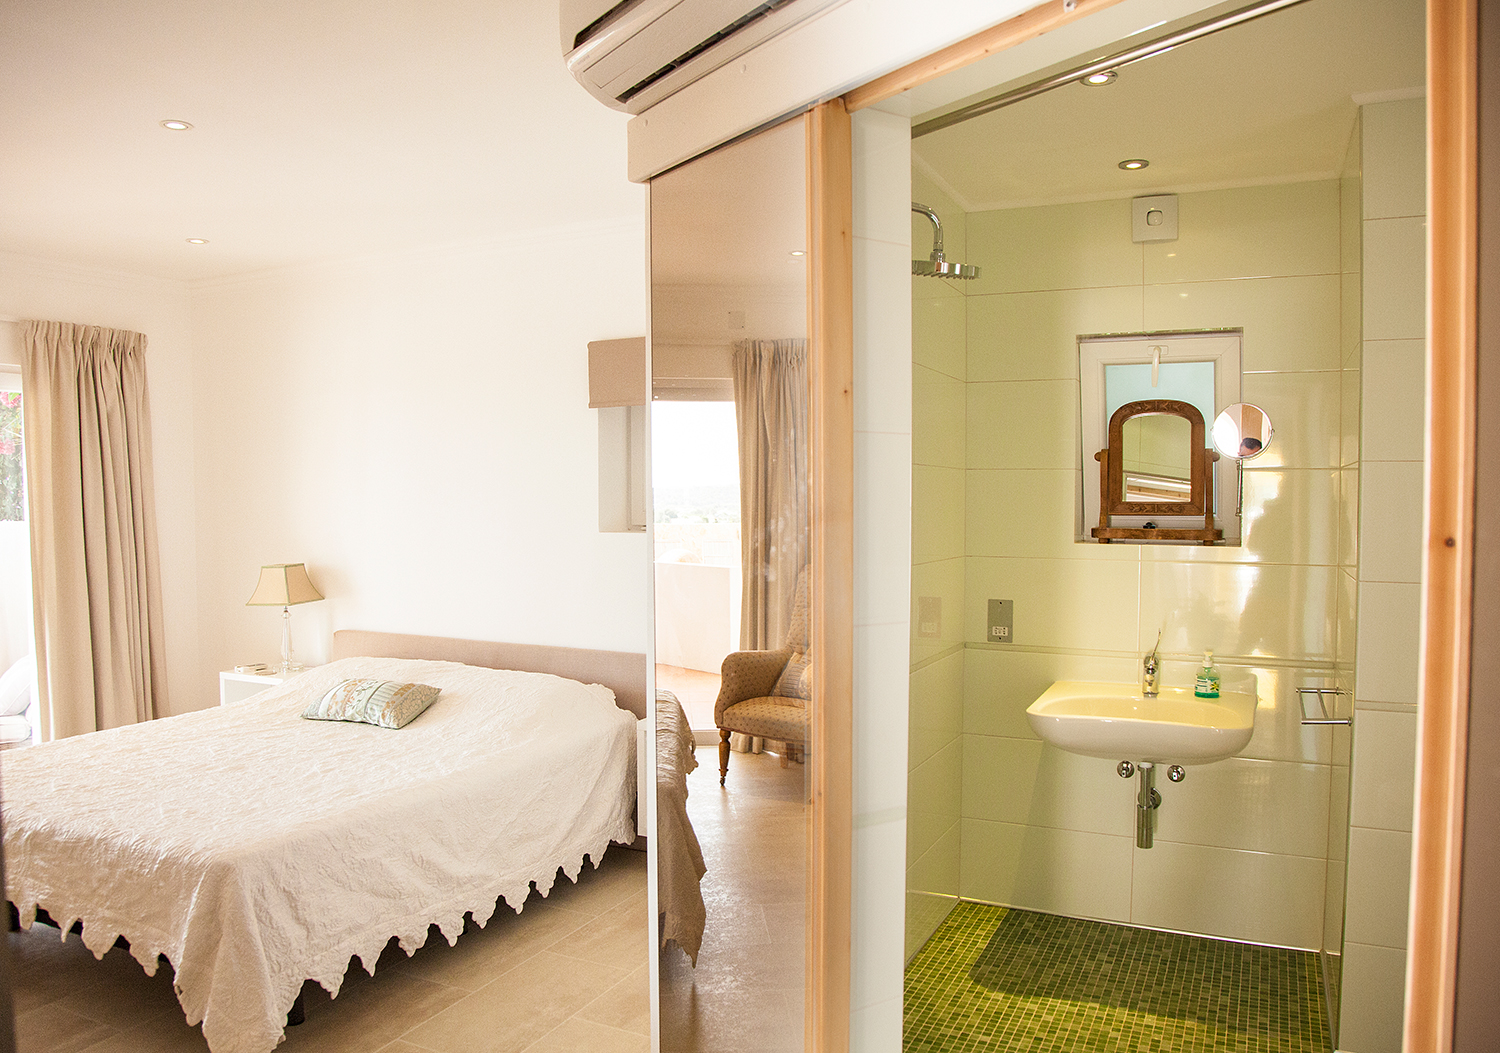 BEDROOM3 - Perfect for the more independent guest.Toilet with support bars and wet-room shower